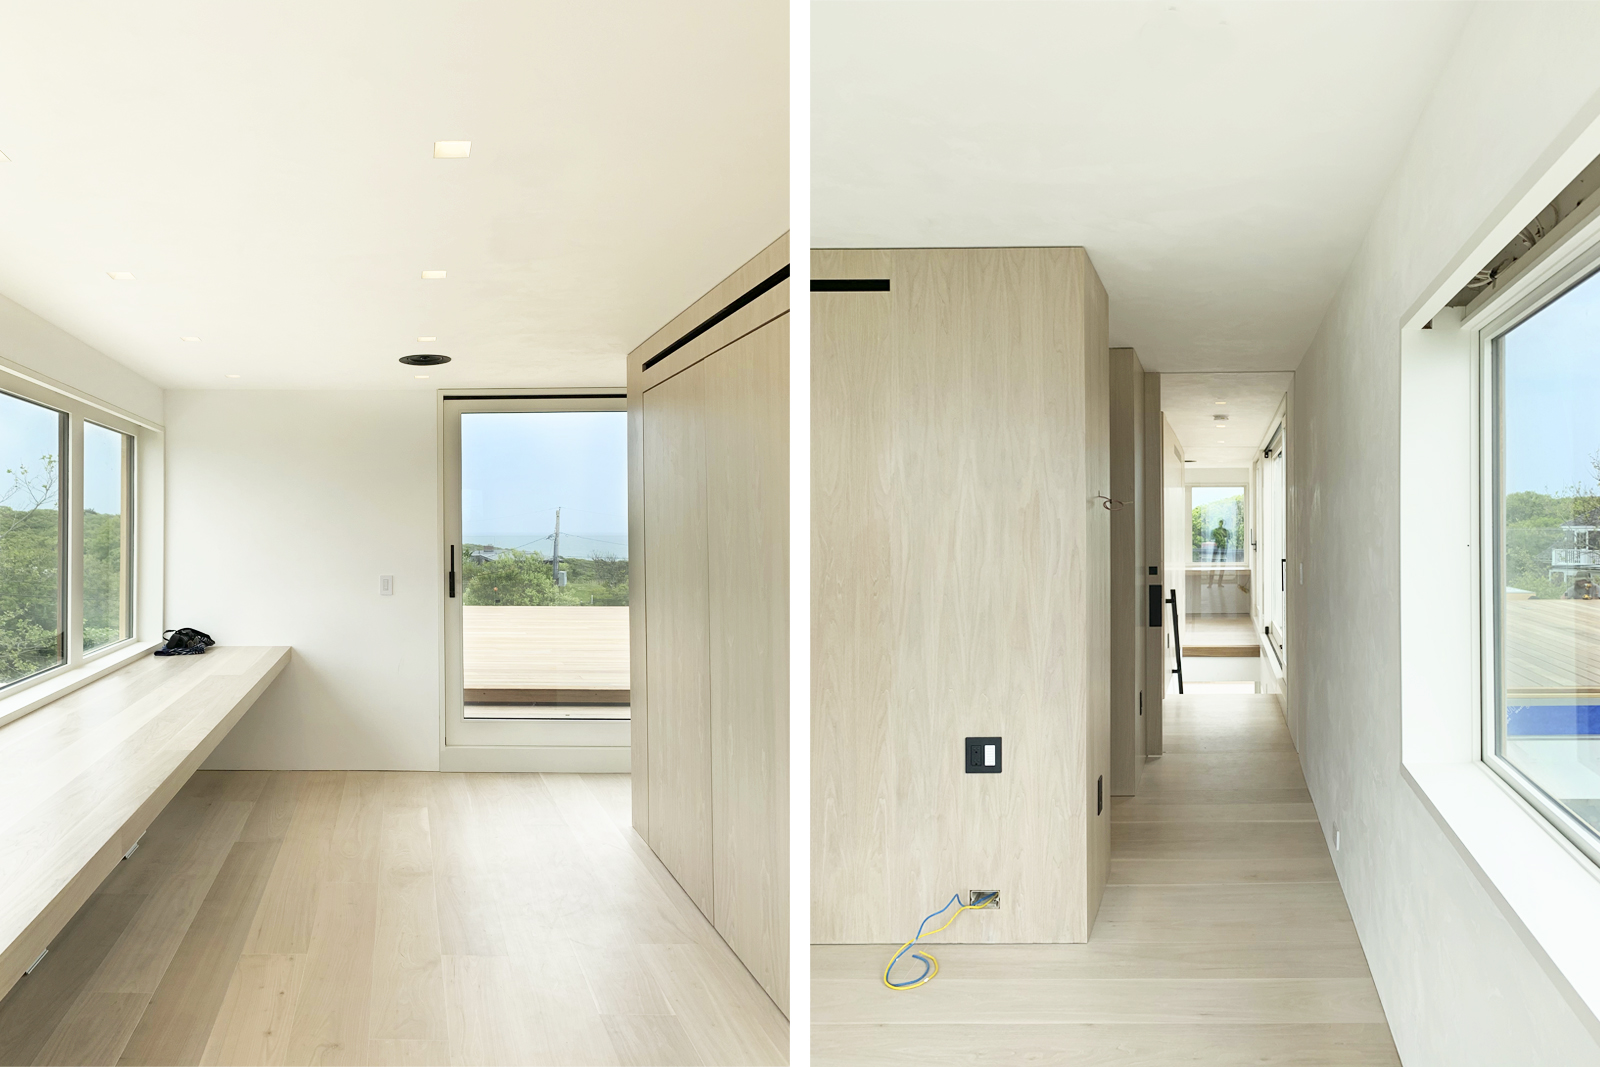 18-res4-resolution-4-architecture-surfside-modern-renovation-montauk-hamptons-ny-master-office.jpg